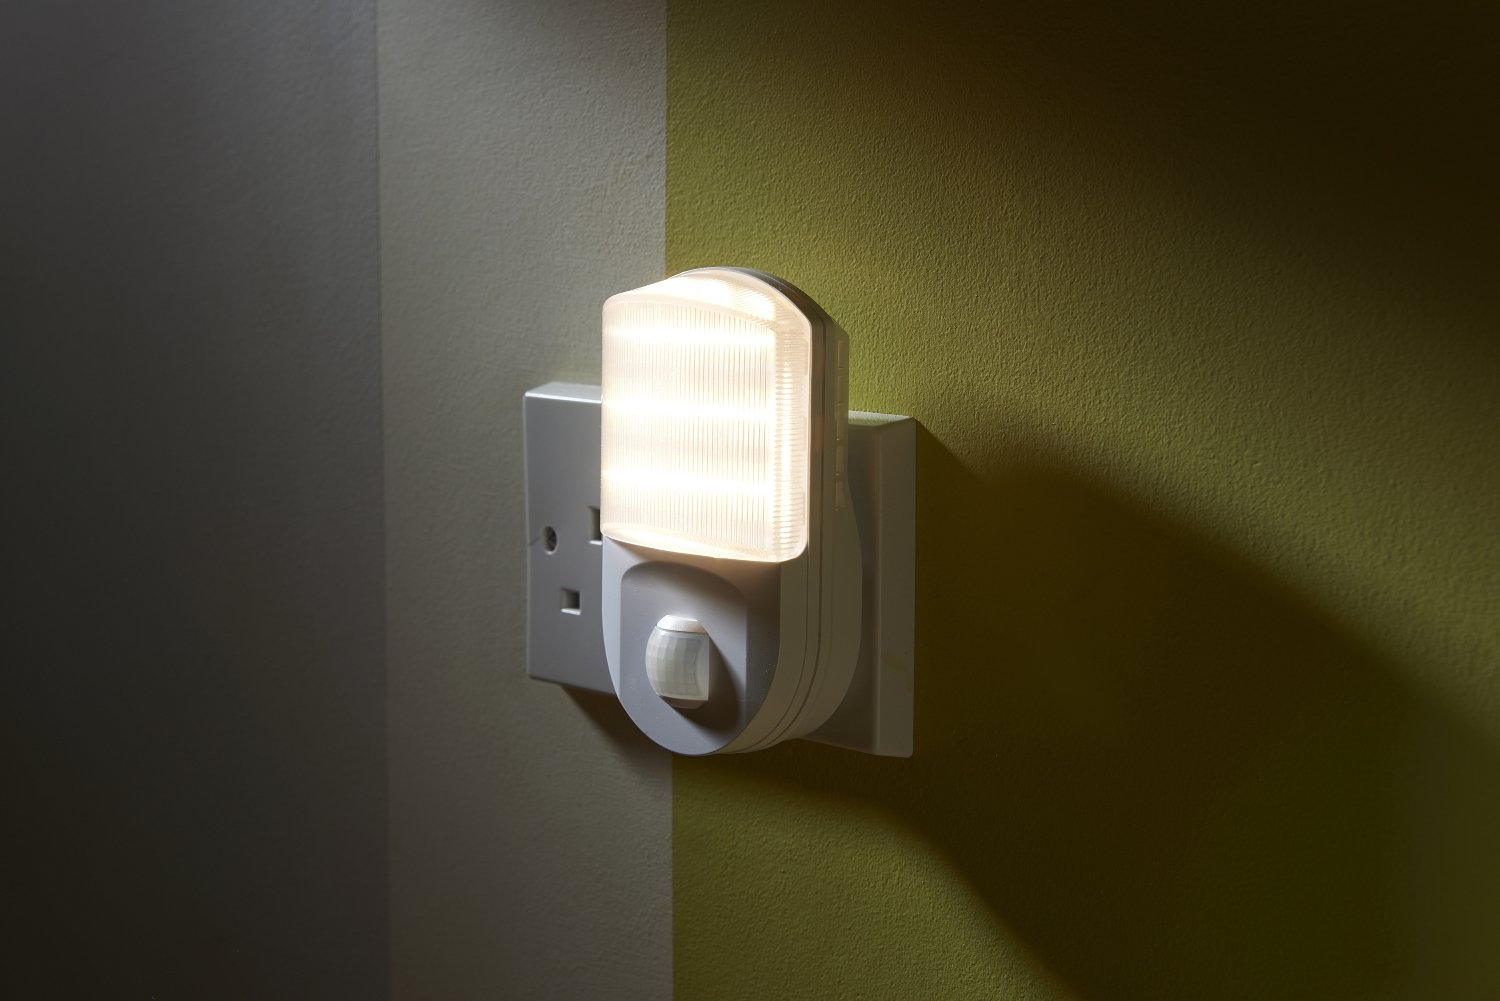 Auraglow super bright plug in pir motion sensor hallway living aid auraglow super bright plug in pir motion sensor hallway living aid safety led night light amazon lighting mozeypictures Choice Image